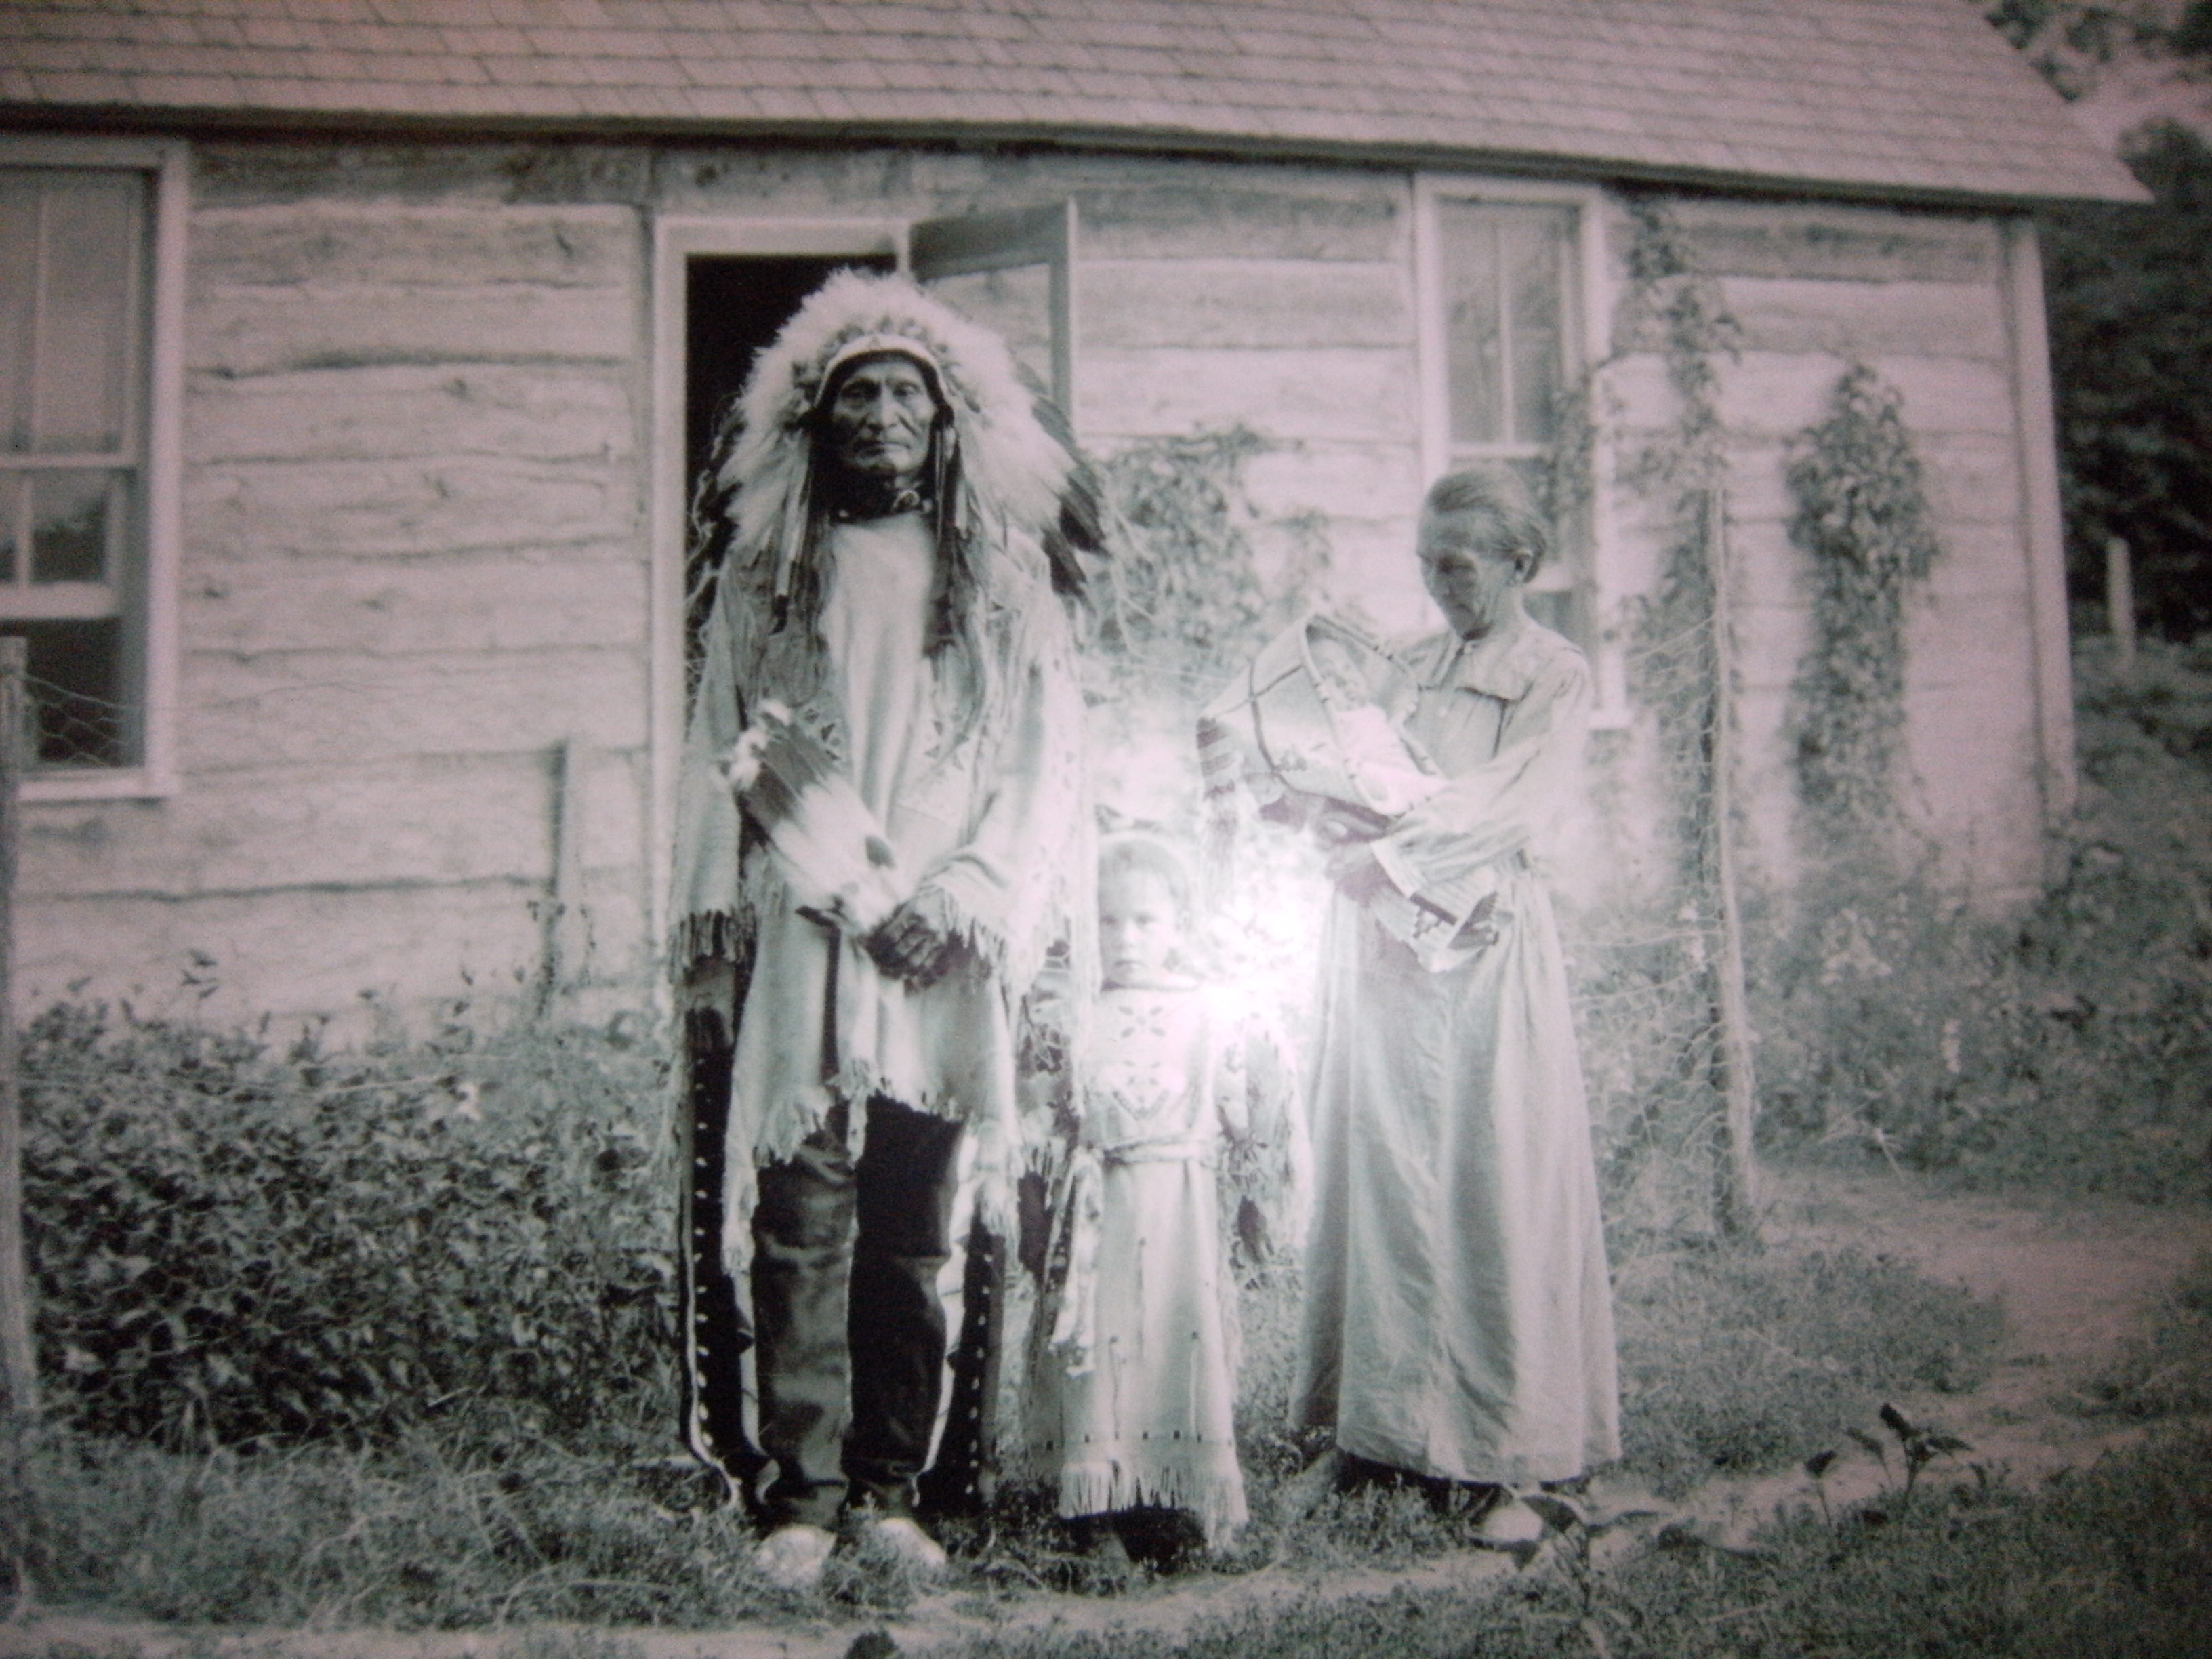 Photo of Chief and family from the Buffalo Bill Historical Center